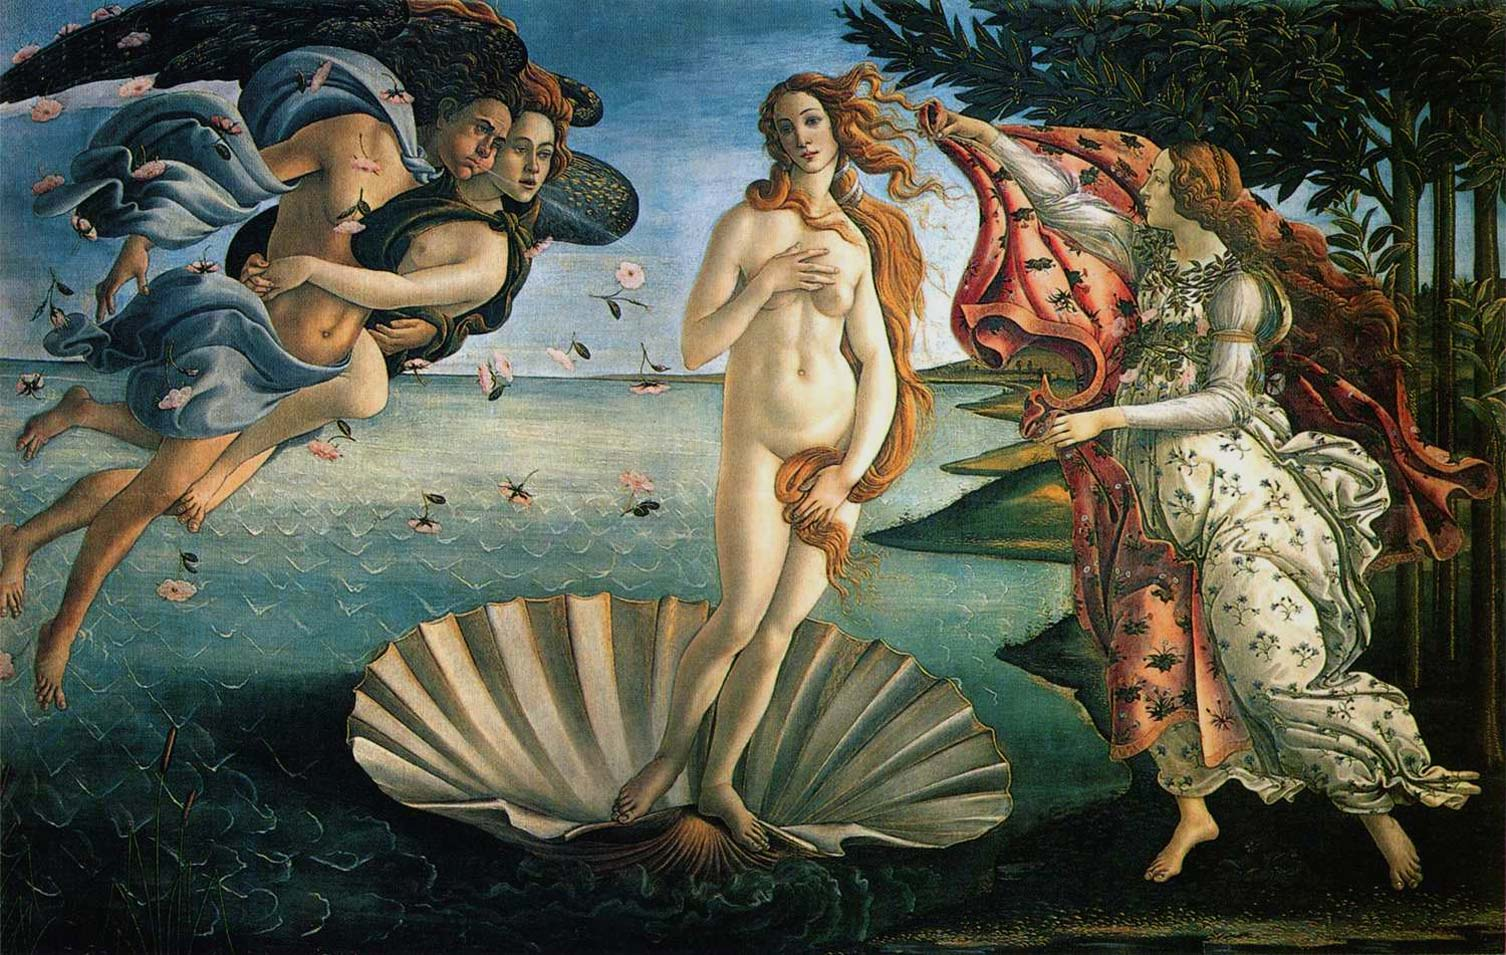 The Birth of Venus, Sandro Botticelli, c.1485